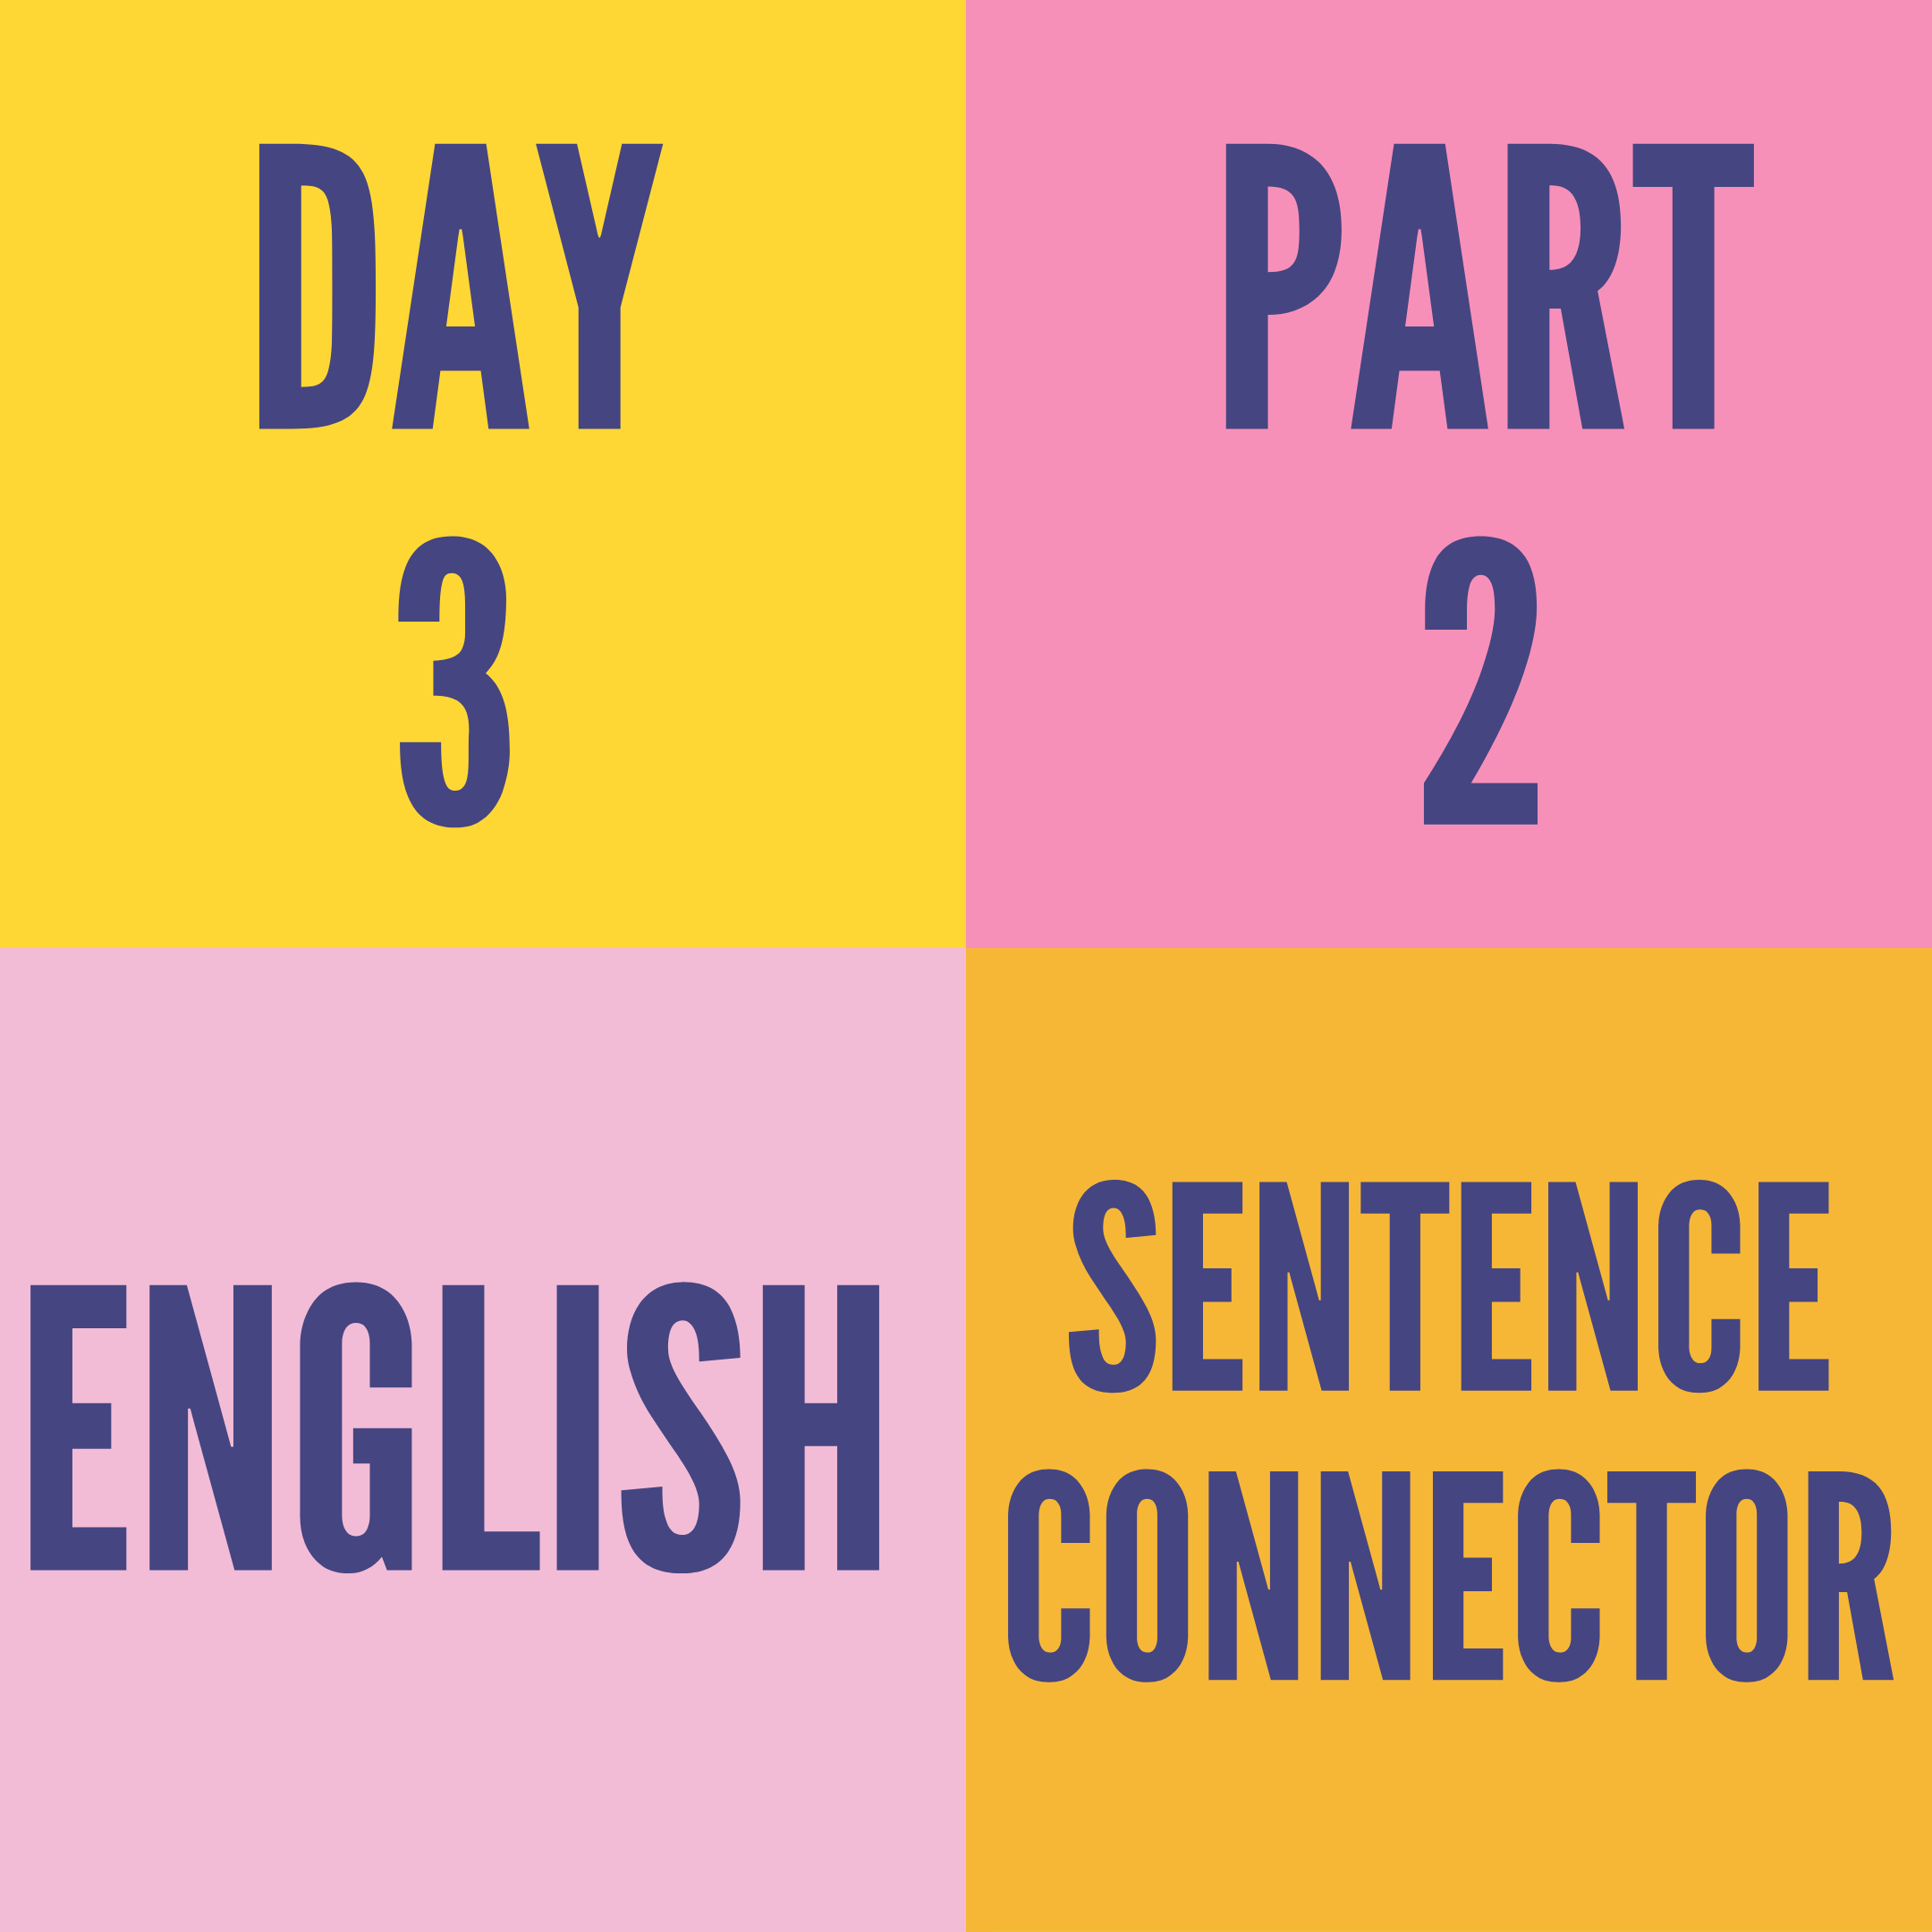 DAY-3 PART-2 SENTENCE CONNECTOR